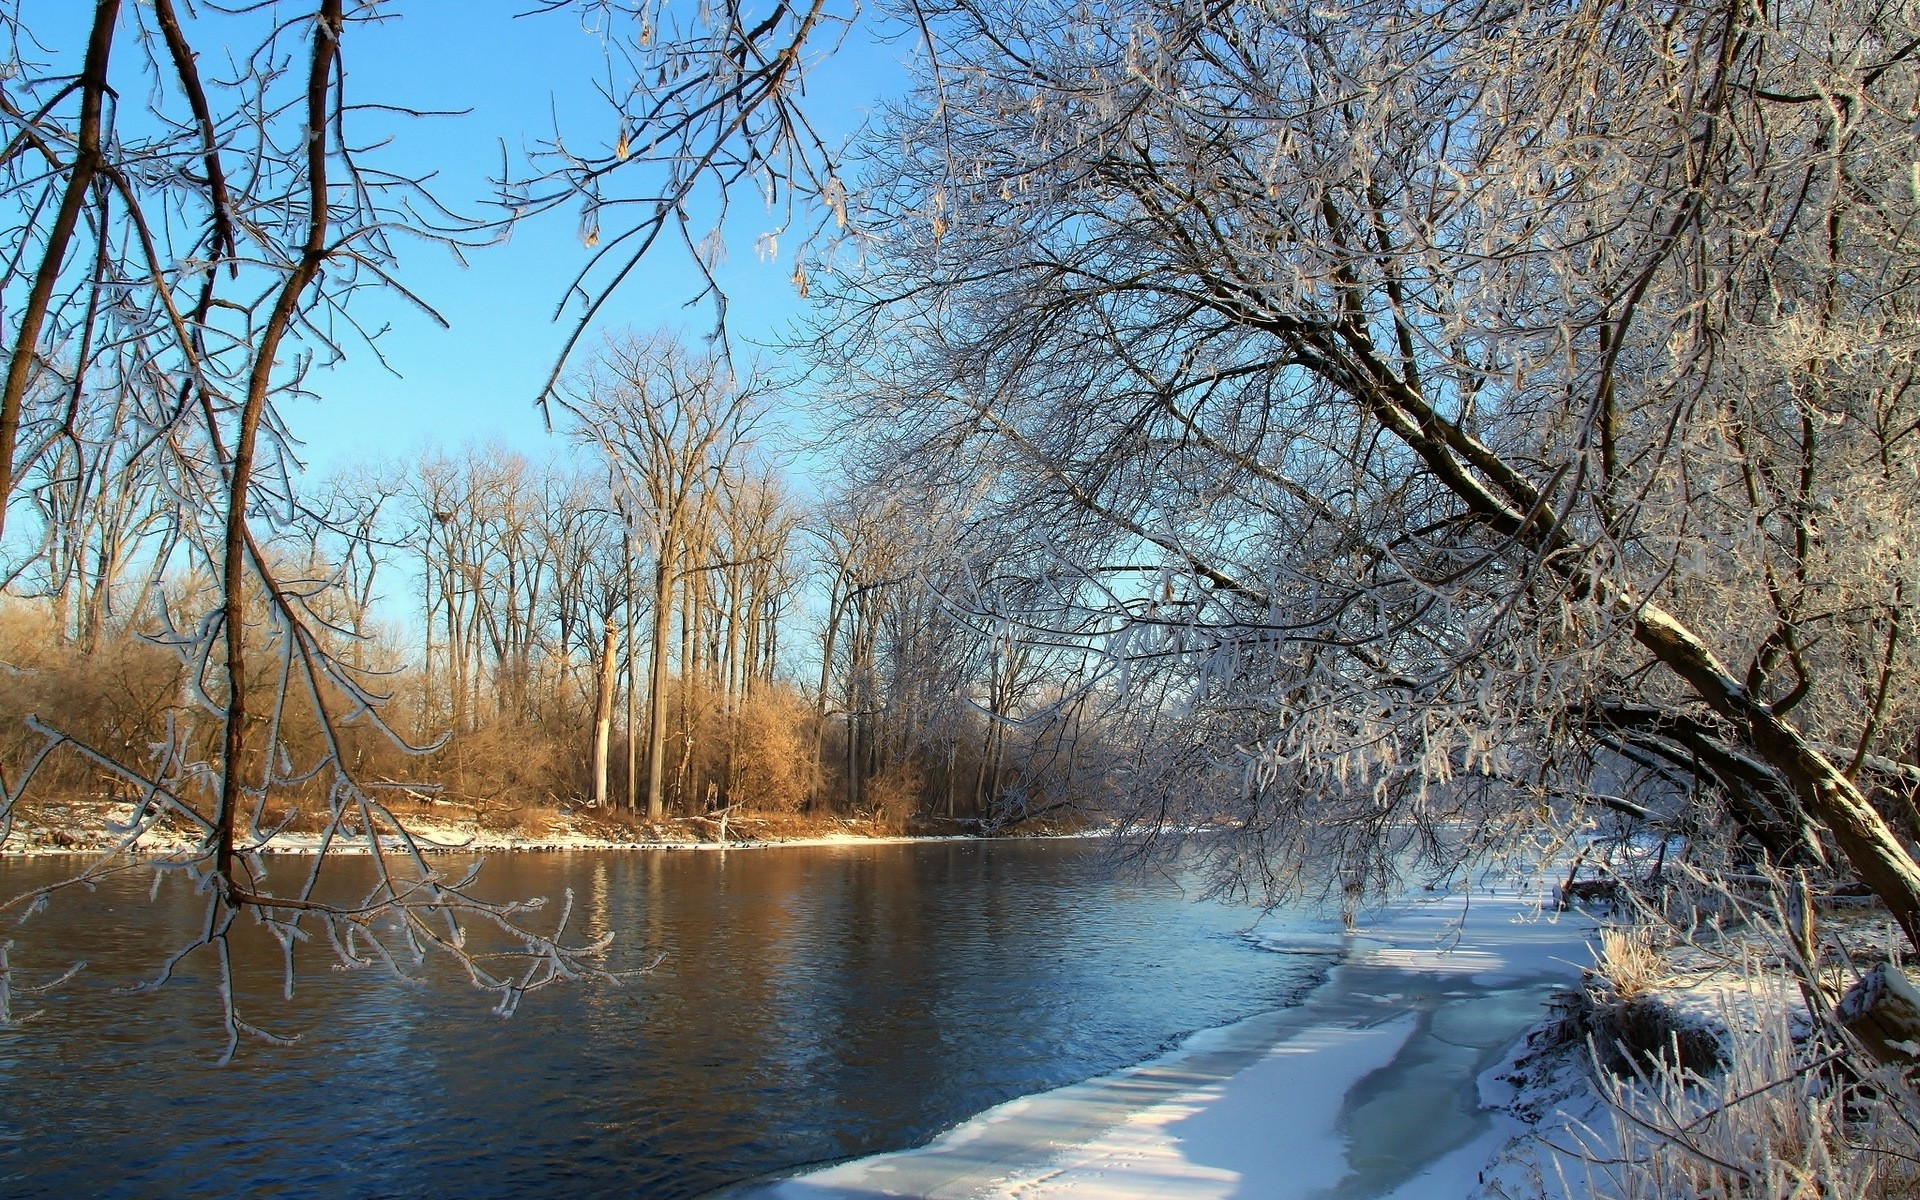 1920x1200 Frozen trees by the river on a sunny day wallpaper